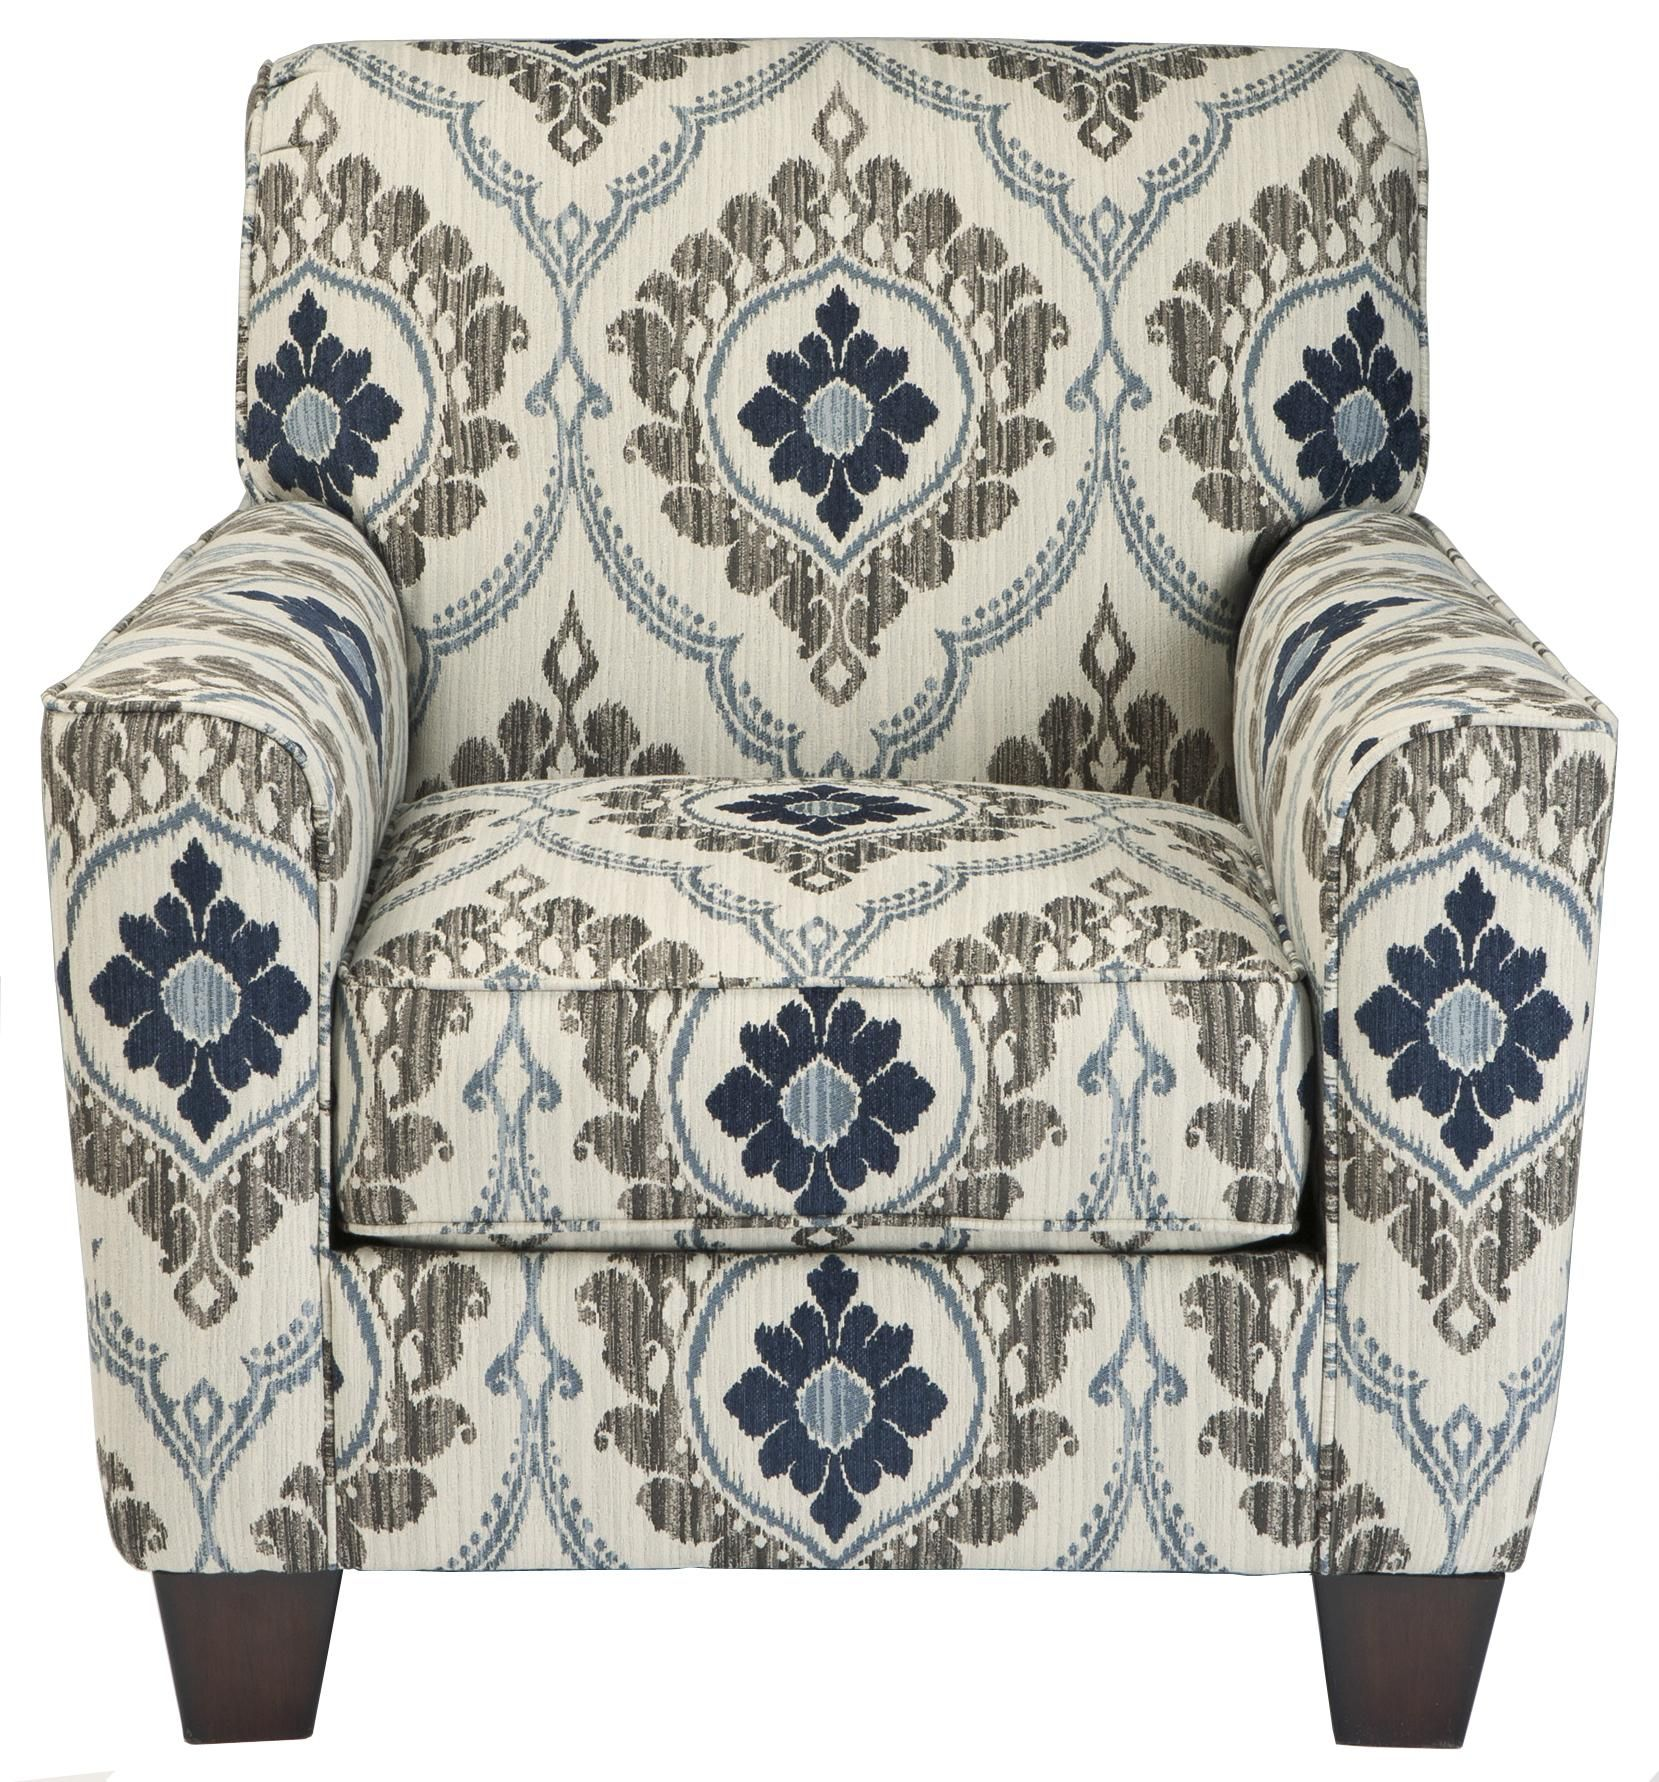 Carlino Mile Mineral Accent Chair By Signature Design By Ashley Furniture With Images Pattern Accent Chair Ashley Furniture Living Room Ashley Furniture